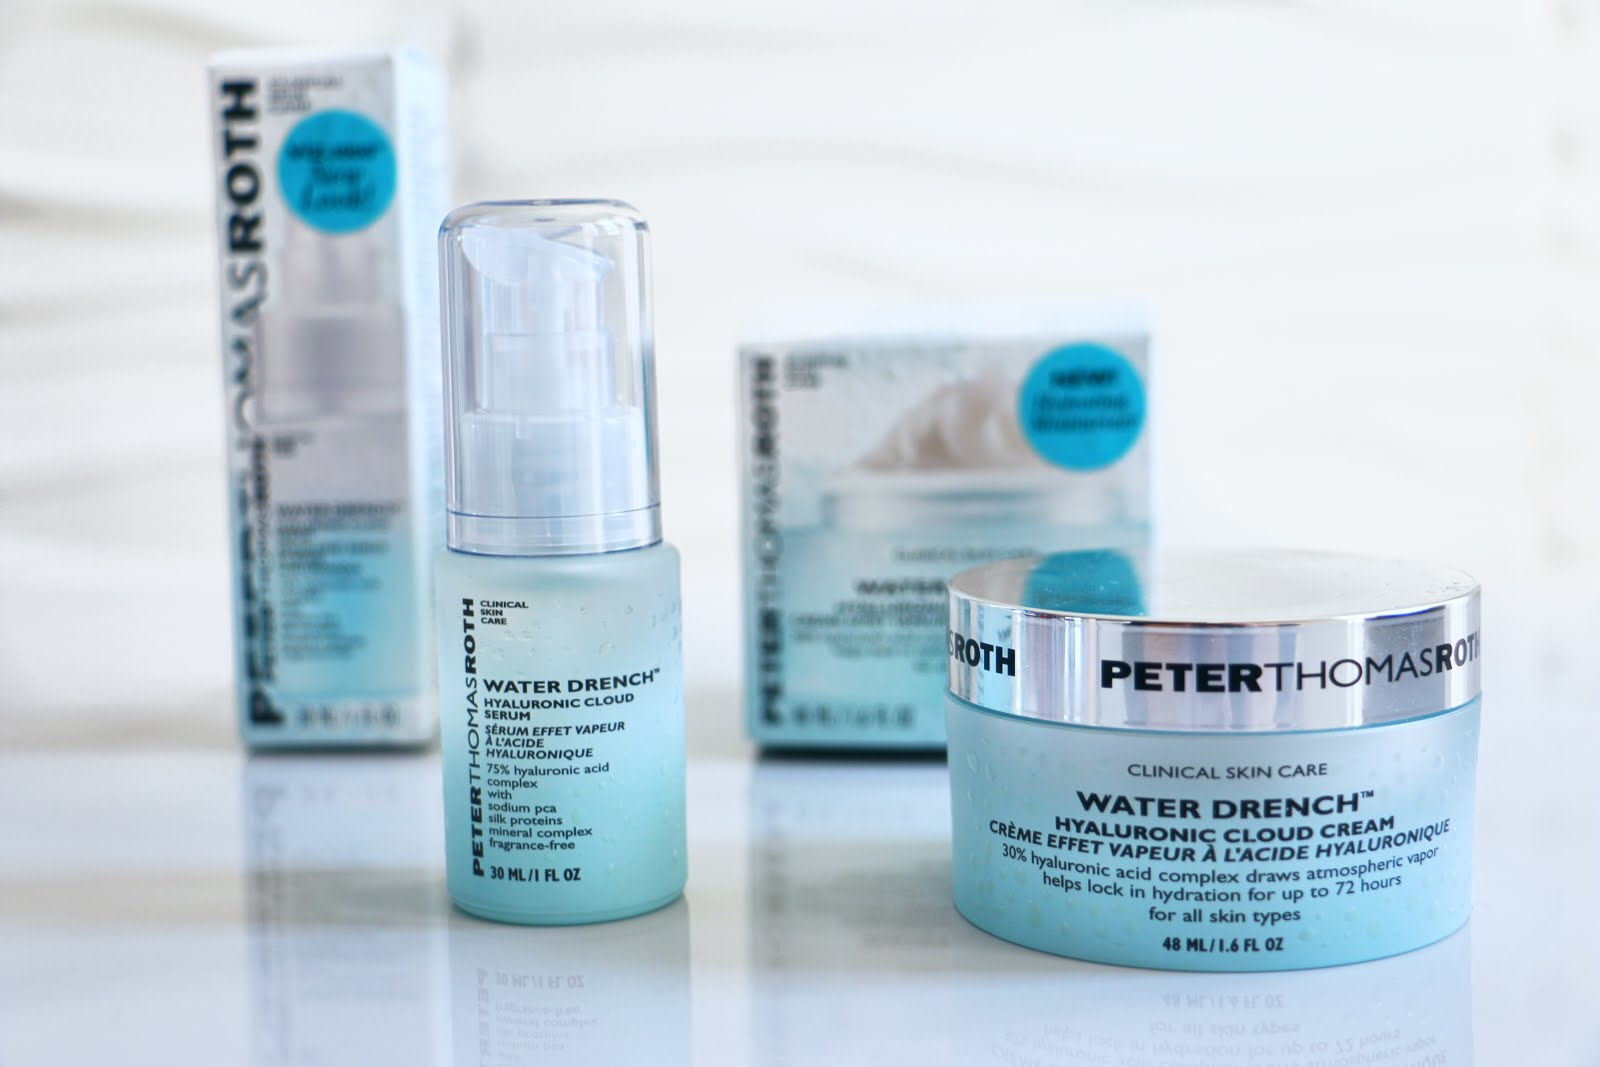 Peter-Thomas-Roth-Water-Drench-Hyaluronic-Cloud-Cream-and-Serum-Vivi-Brizuela-PinkOrchidMakeup